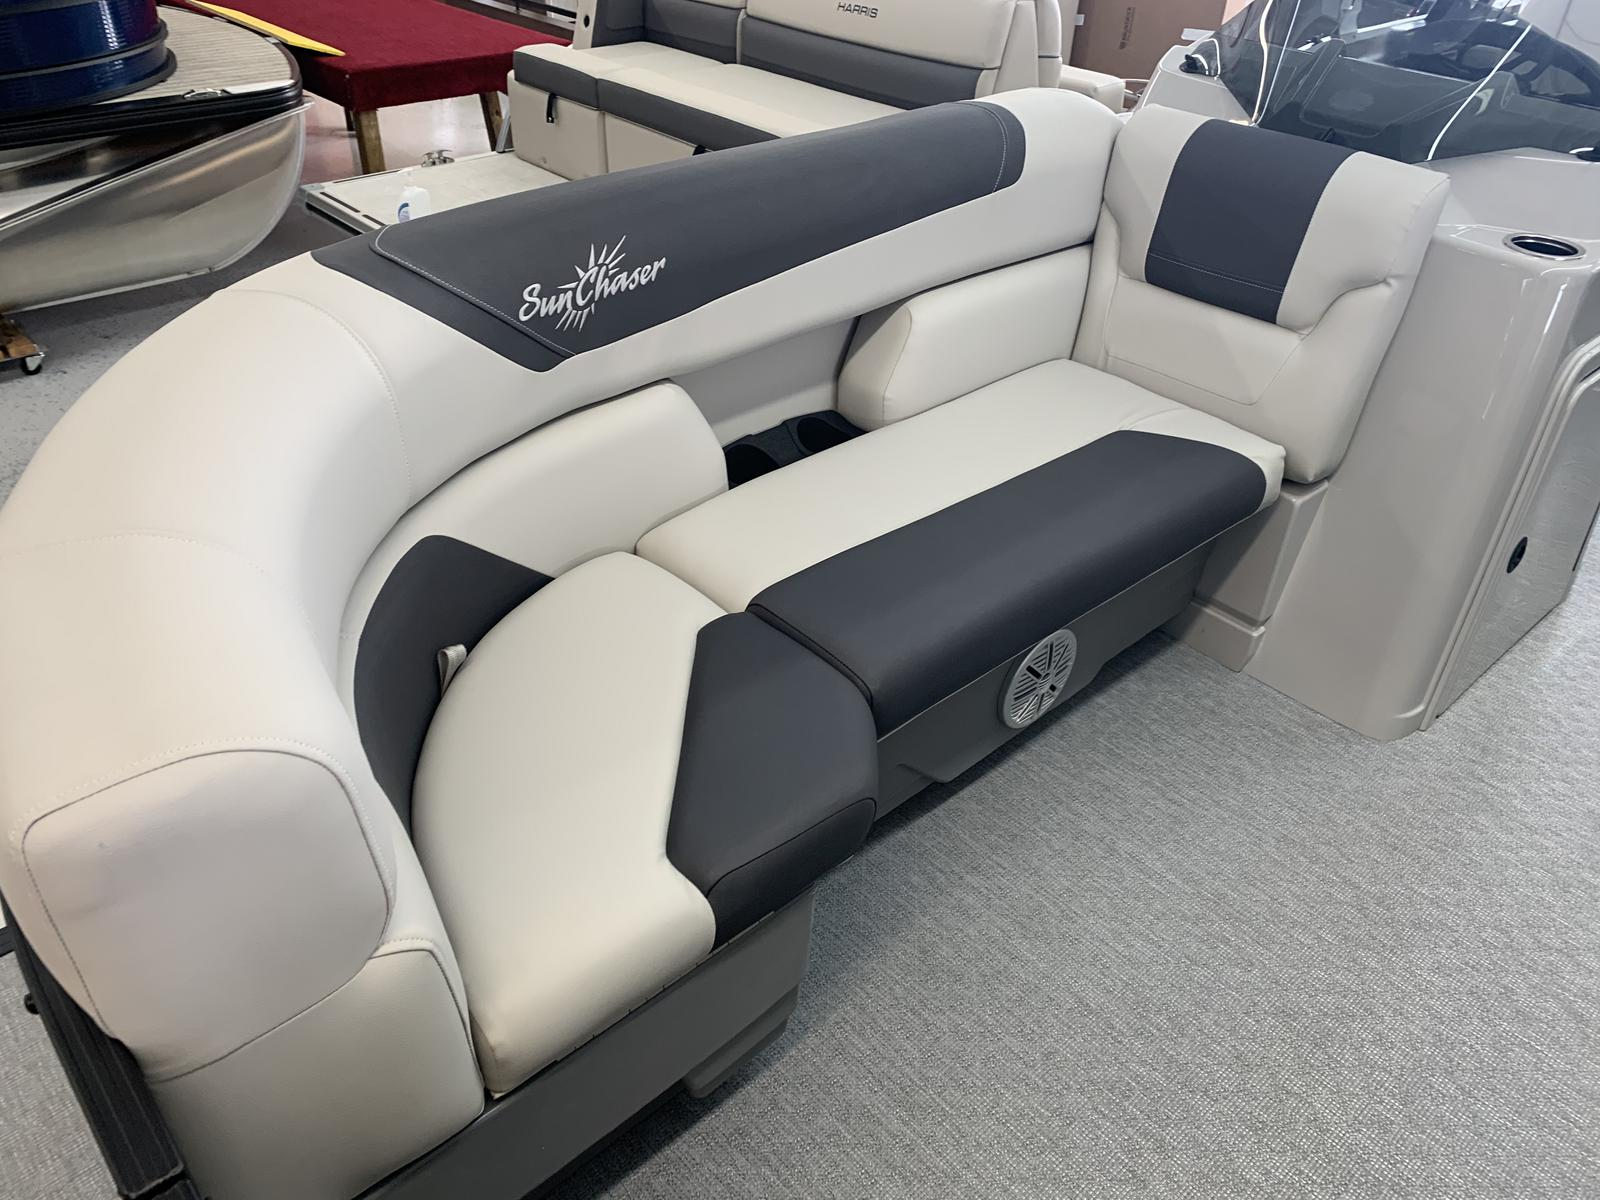 2021 SunChaser boat for sale, model of the boat is Geneva Cruise 22 SB & Image # 2 of 14